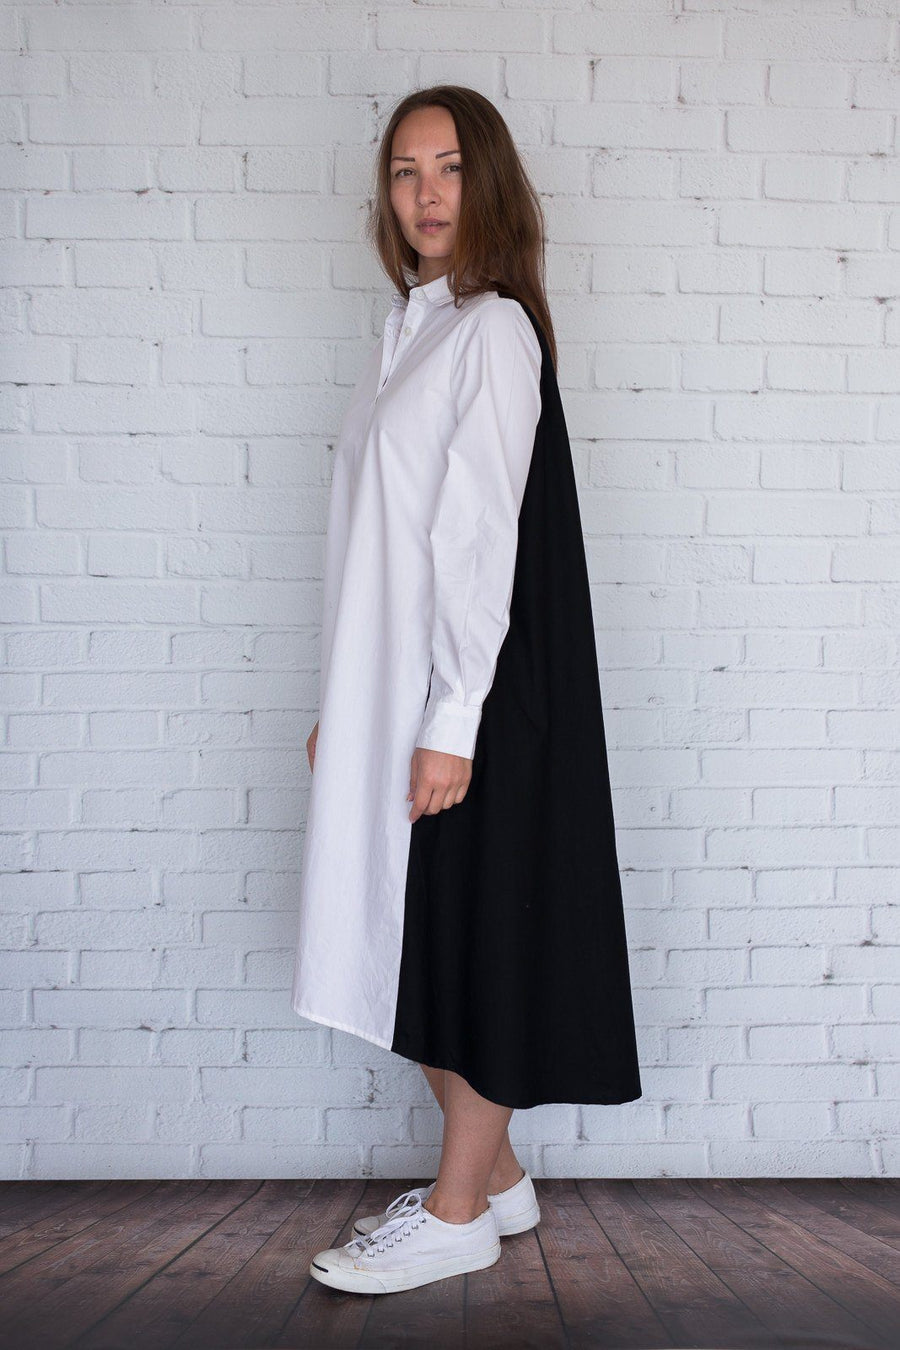 Maaya Medium - White/Black Poplin - PROJECT 6, modest fashion